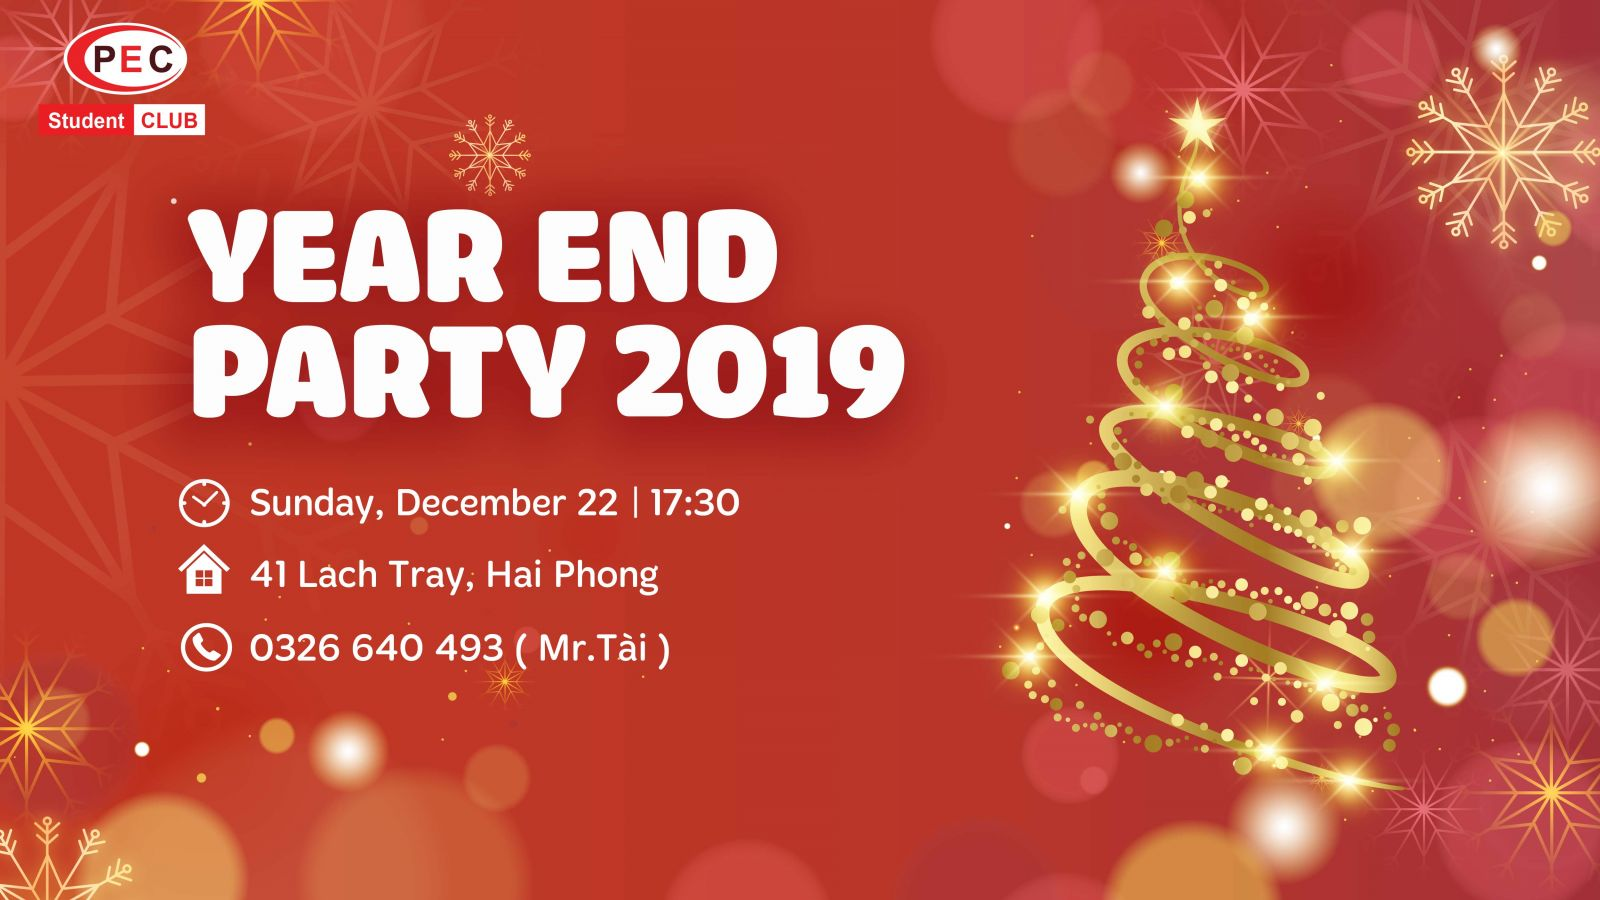 YEAR END PARTY